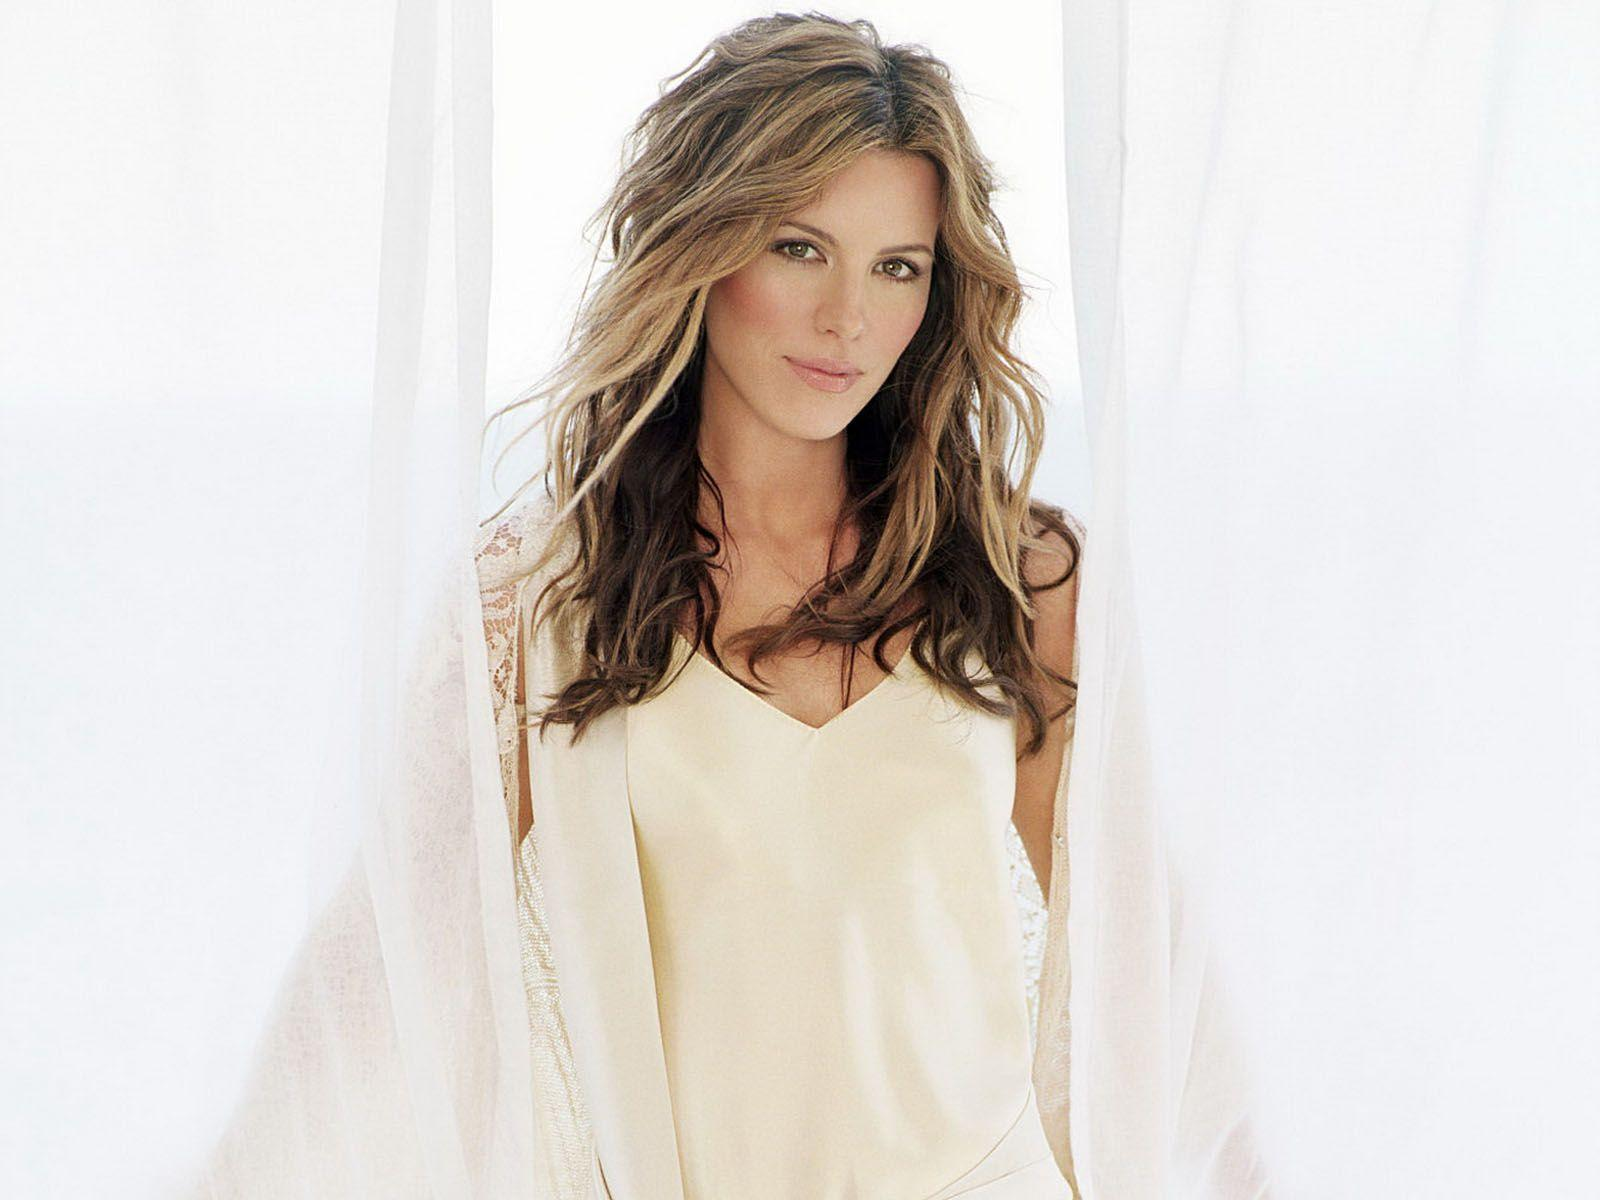 kate beckinsale hd wallpapers wallpaper cave